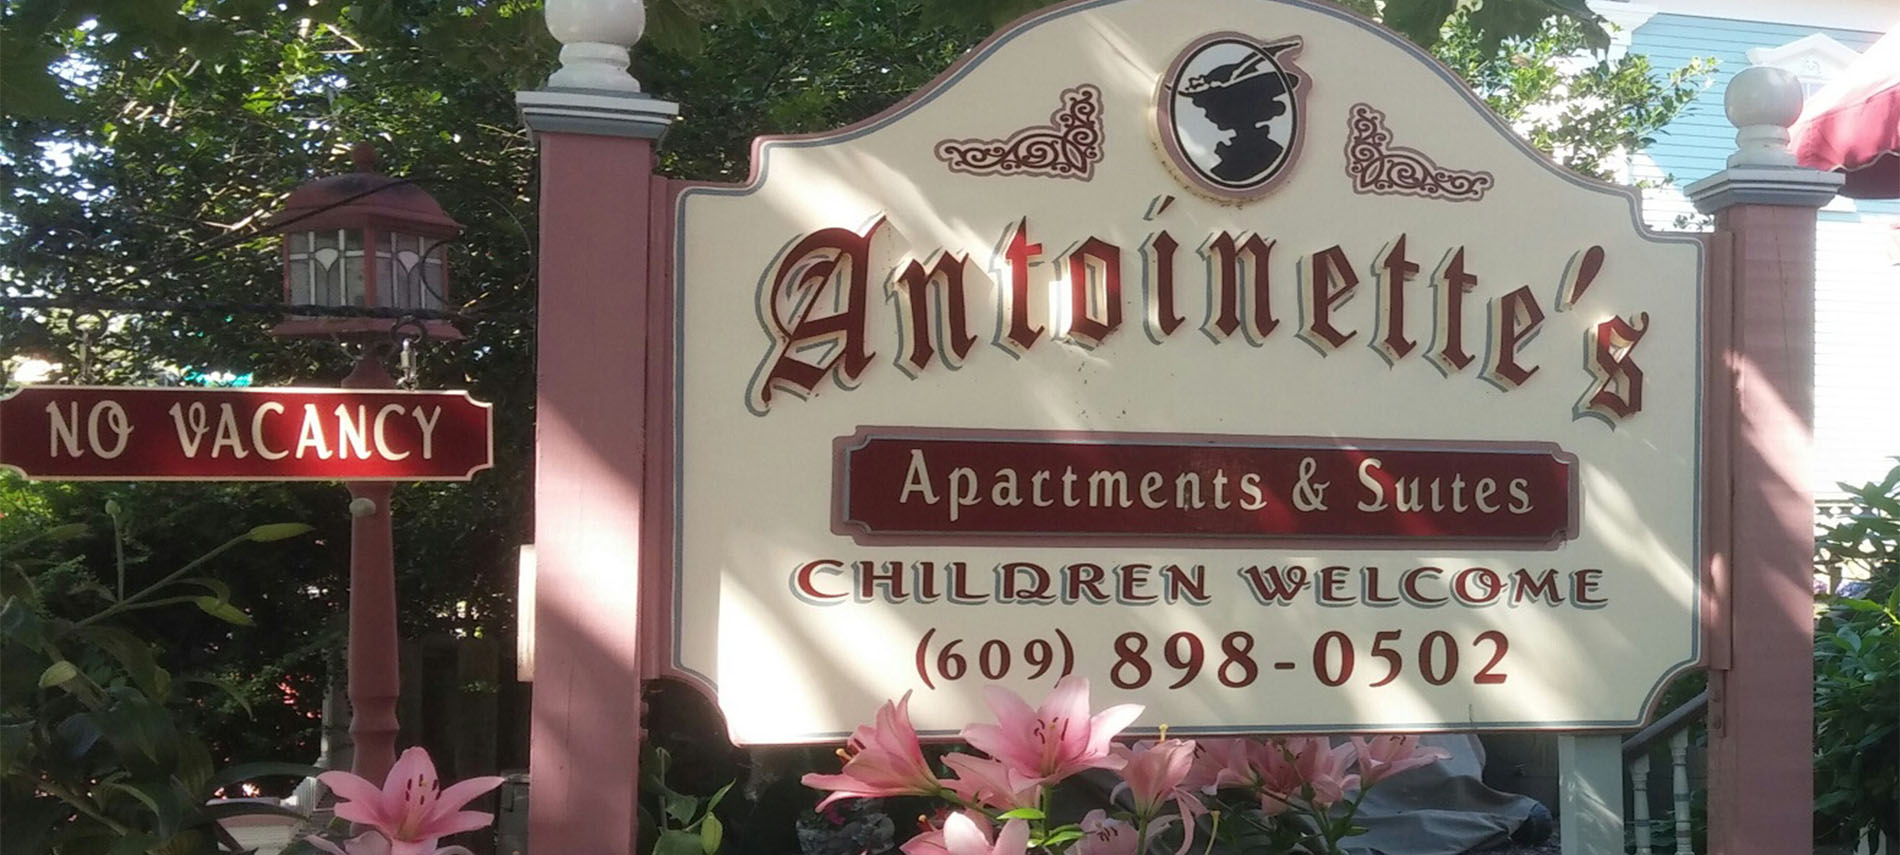 Large mauve and cream exterior sign for Antoinette's Apartments and Suites